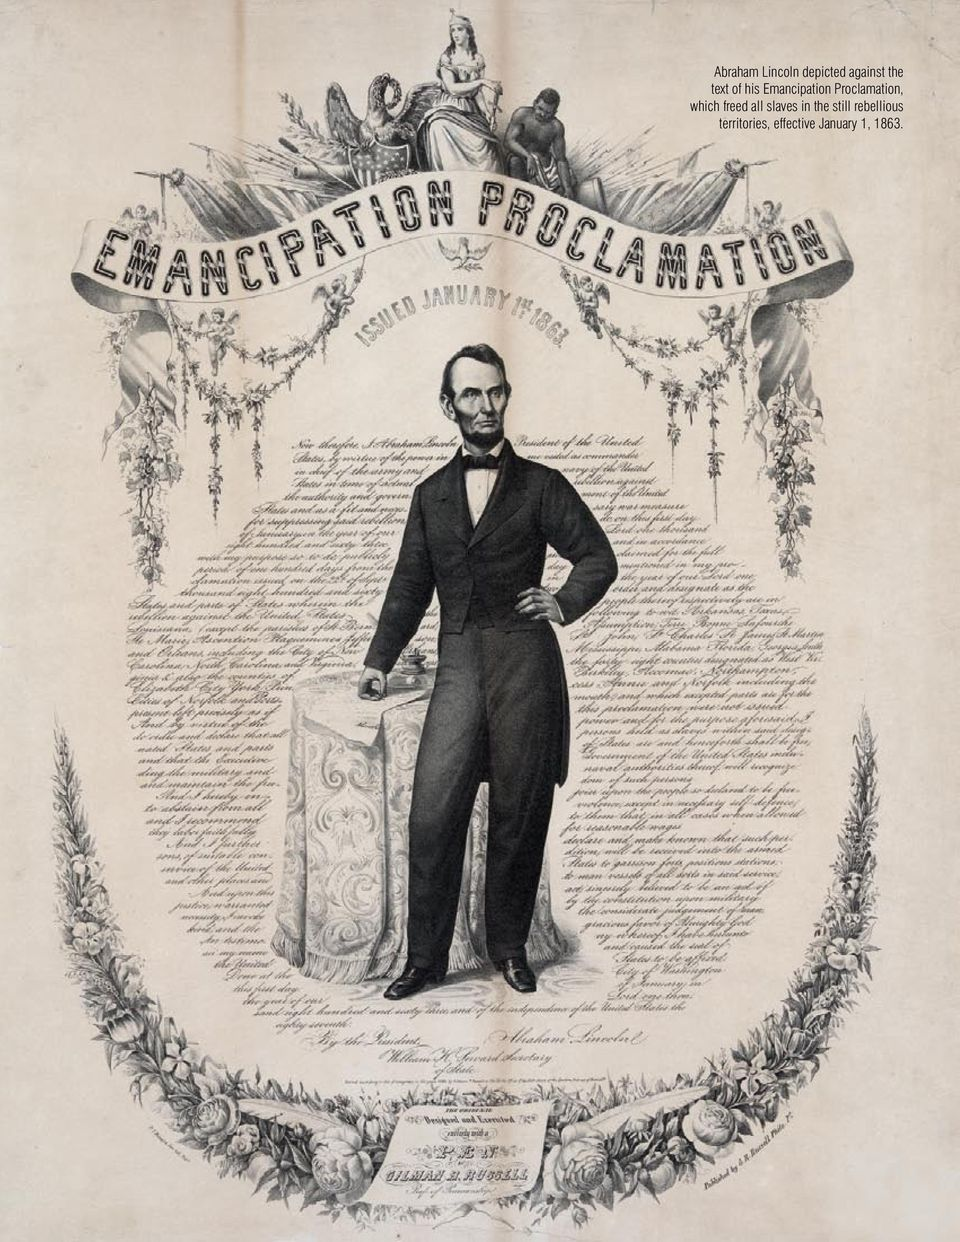 CIVIL RIGHTS MOVEMENT Abraham Lincoln depicted